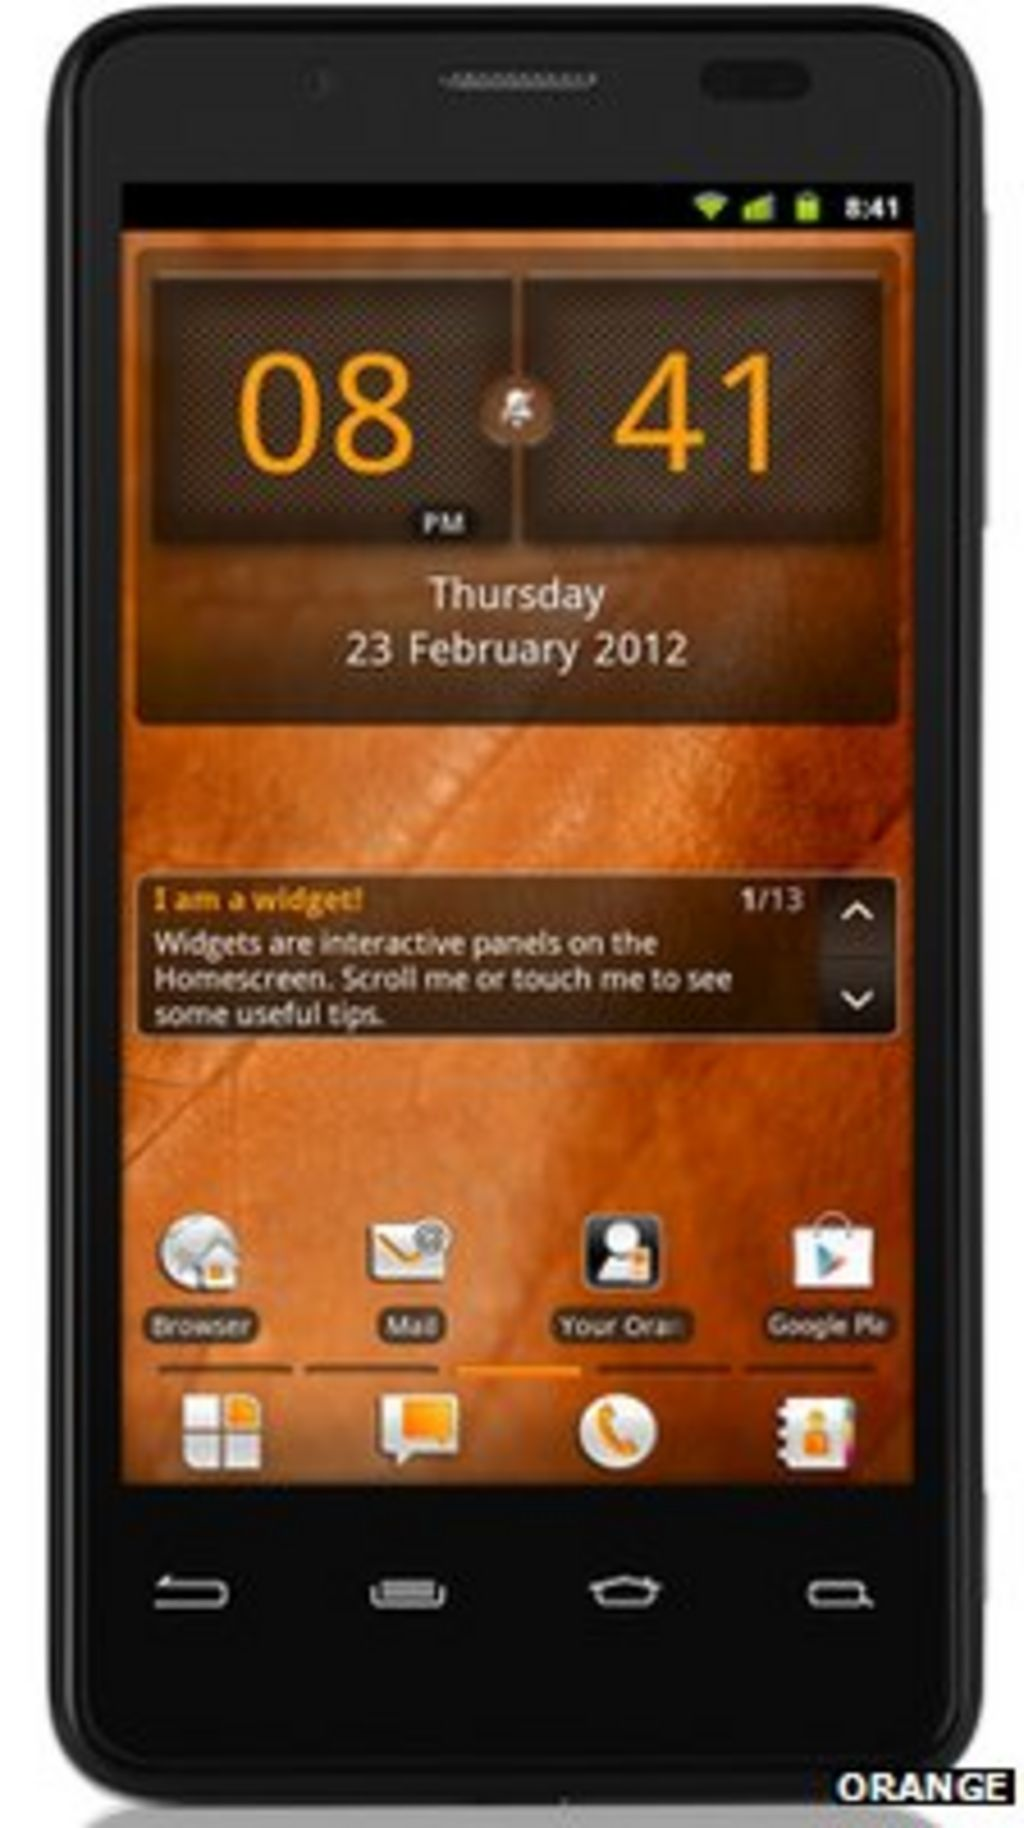 intel based smartphone unveiled by orange for uk and france bbc news. Black Bedroom Furniture Sets. Home Design Ideas